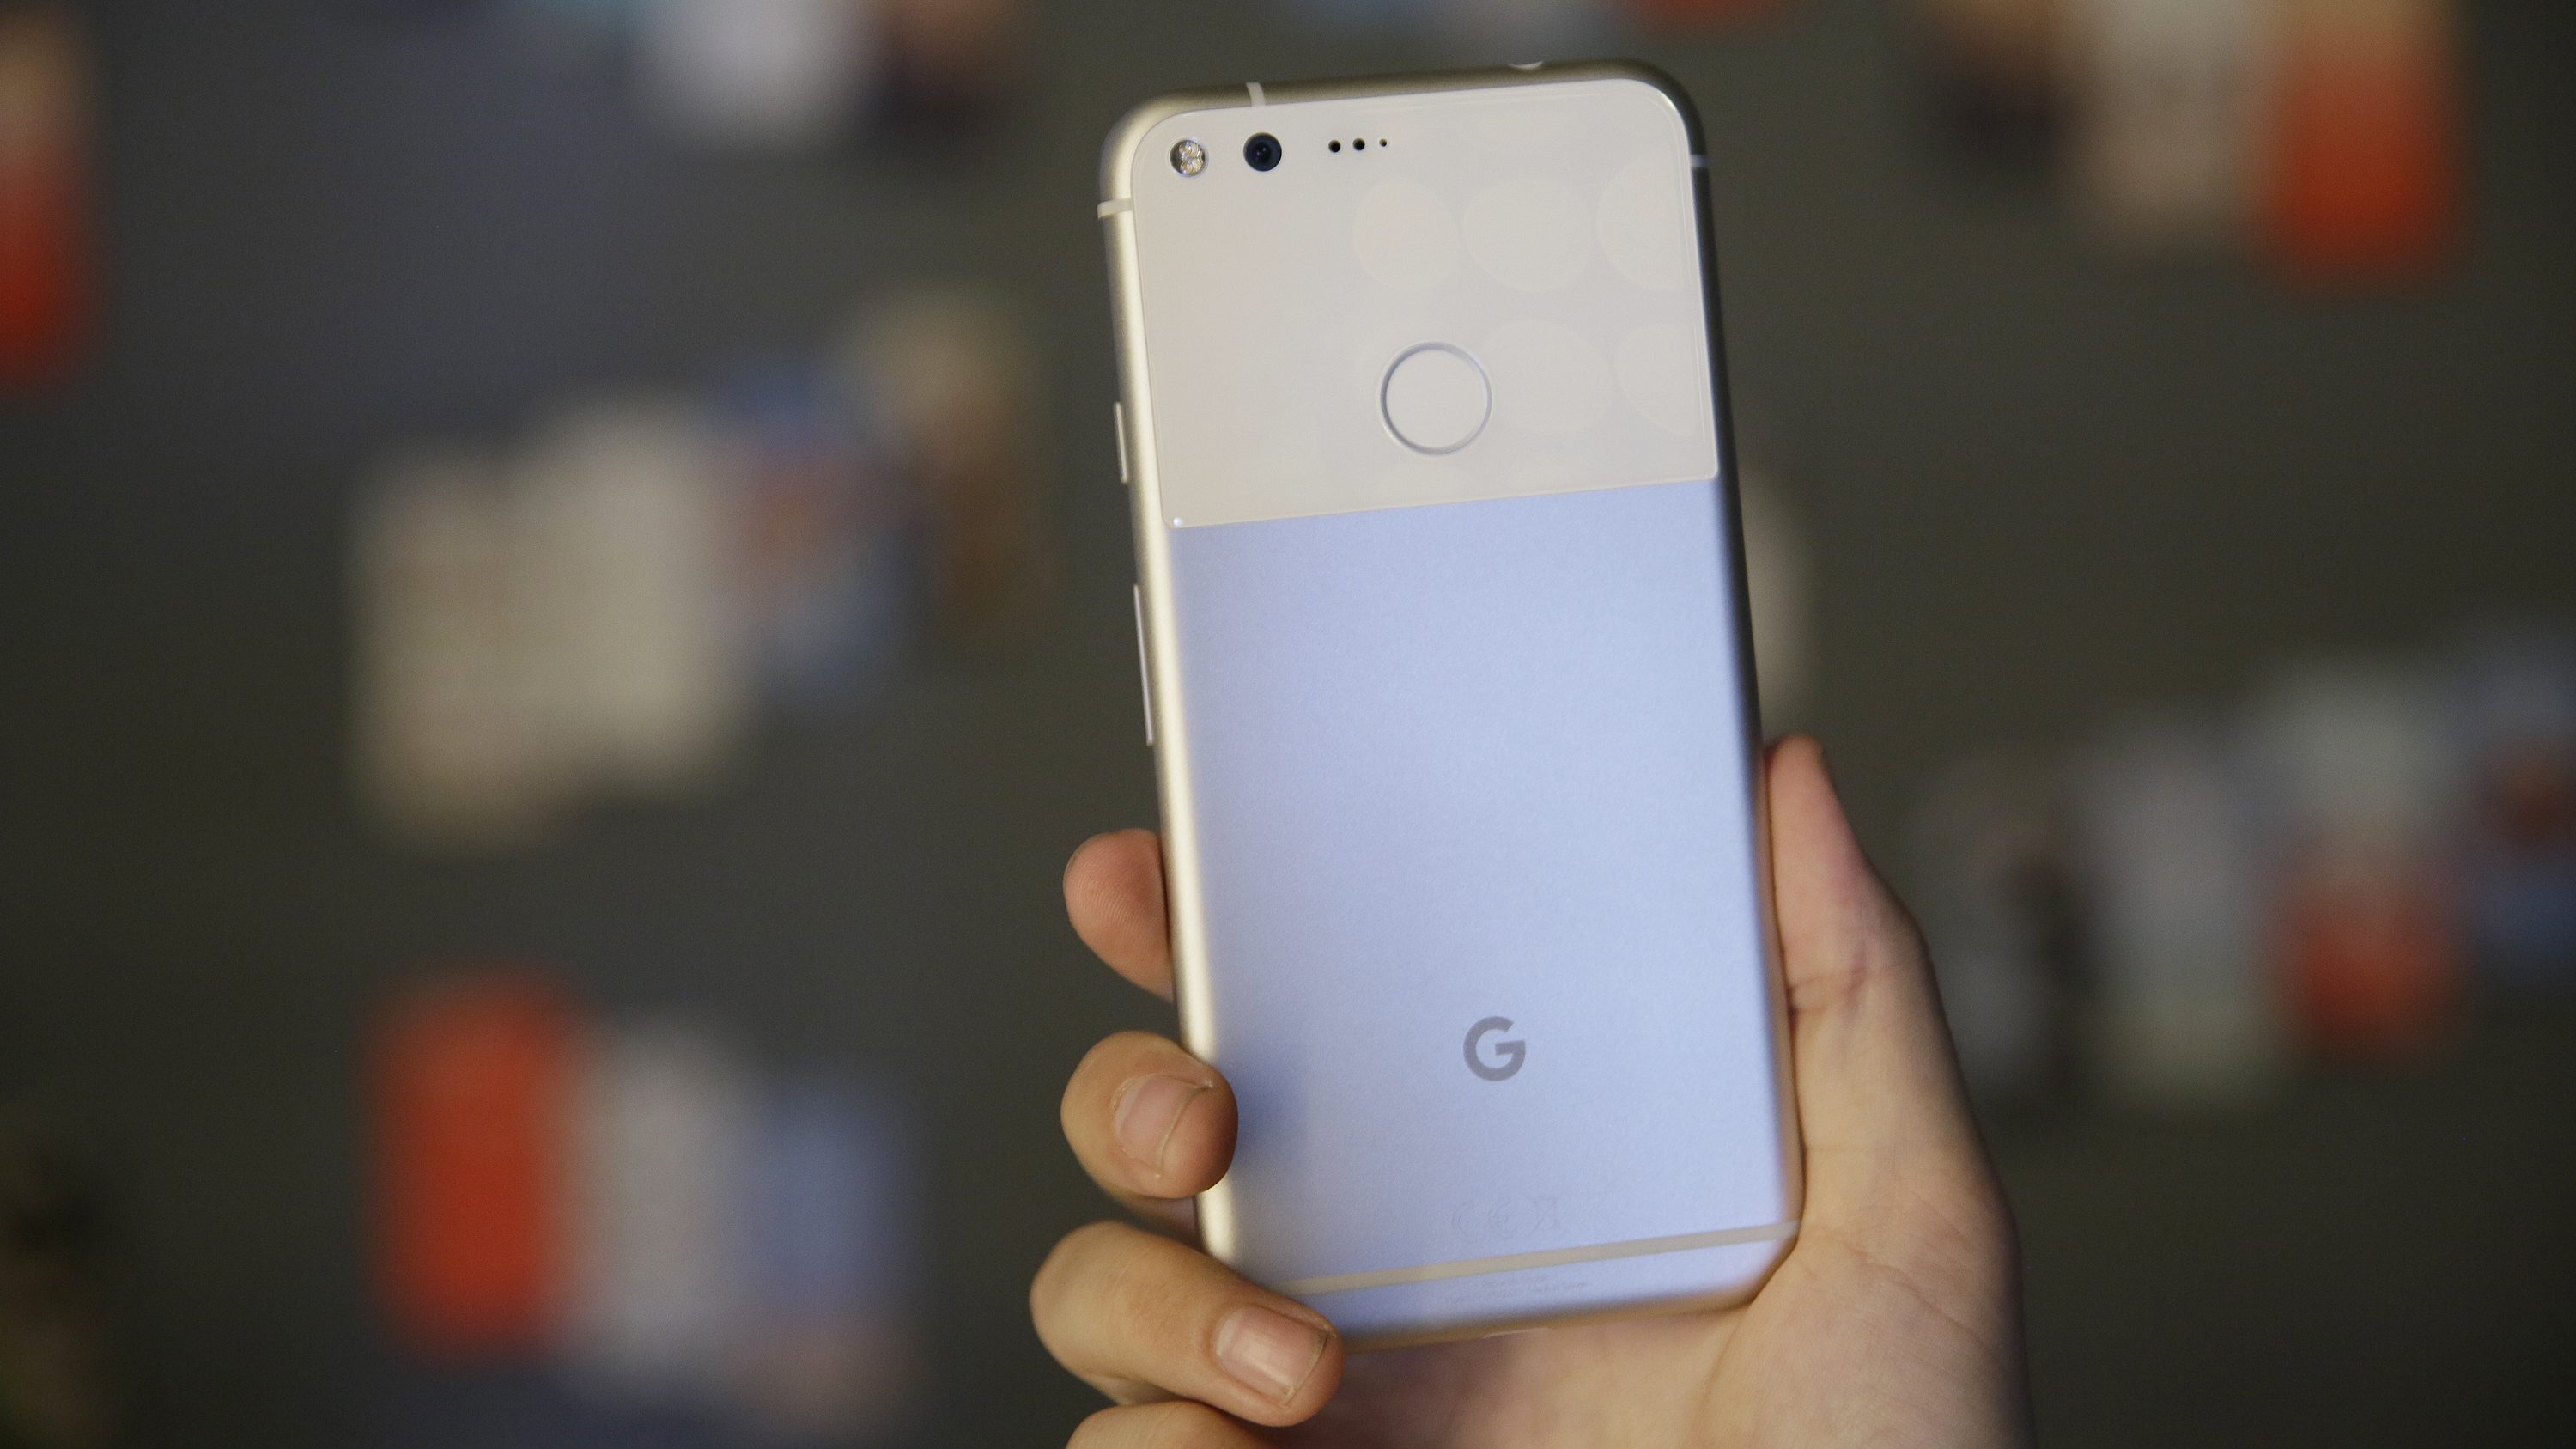 "The new Google Pixel phone is displayed following a product event, Tuesday, Oct. 4, 2016, in San Francisco. Google launched an aggressive challenge to Apple and Samsung introducing its own new line of smartphones called Pixel, which are designed to showcase a digital helper the company calls ""Google Assistant."" The new phones represent a big, new push by Google to sell its own consumer devices, instead of largely just supplying software for other manufacturers. (AP Photo/Eric Risberg)"